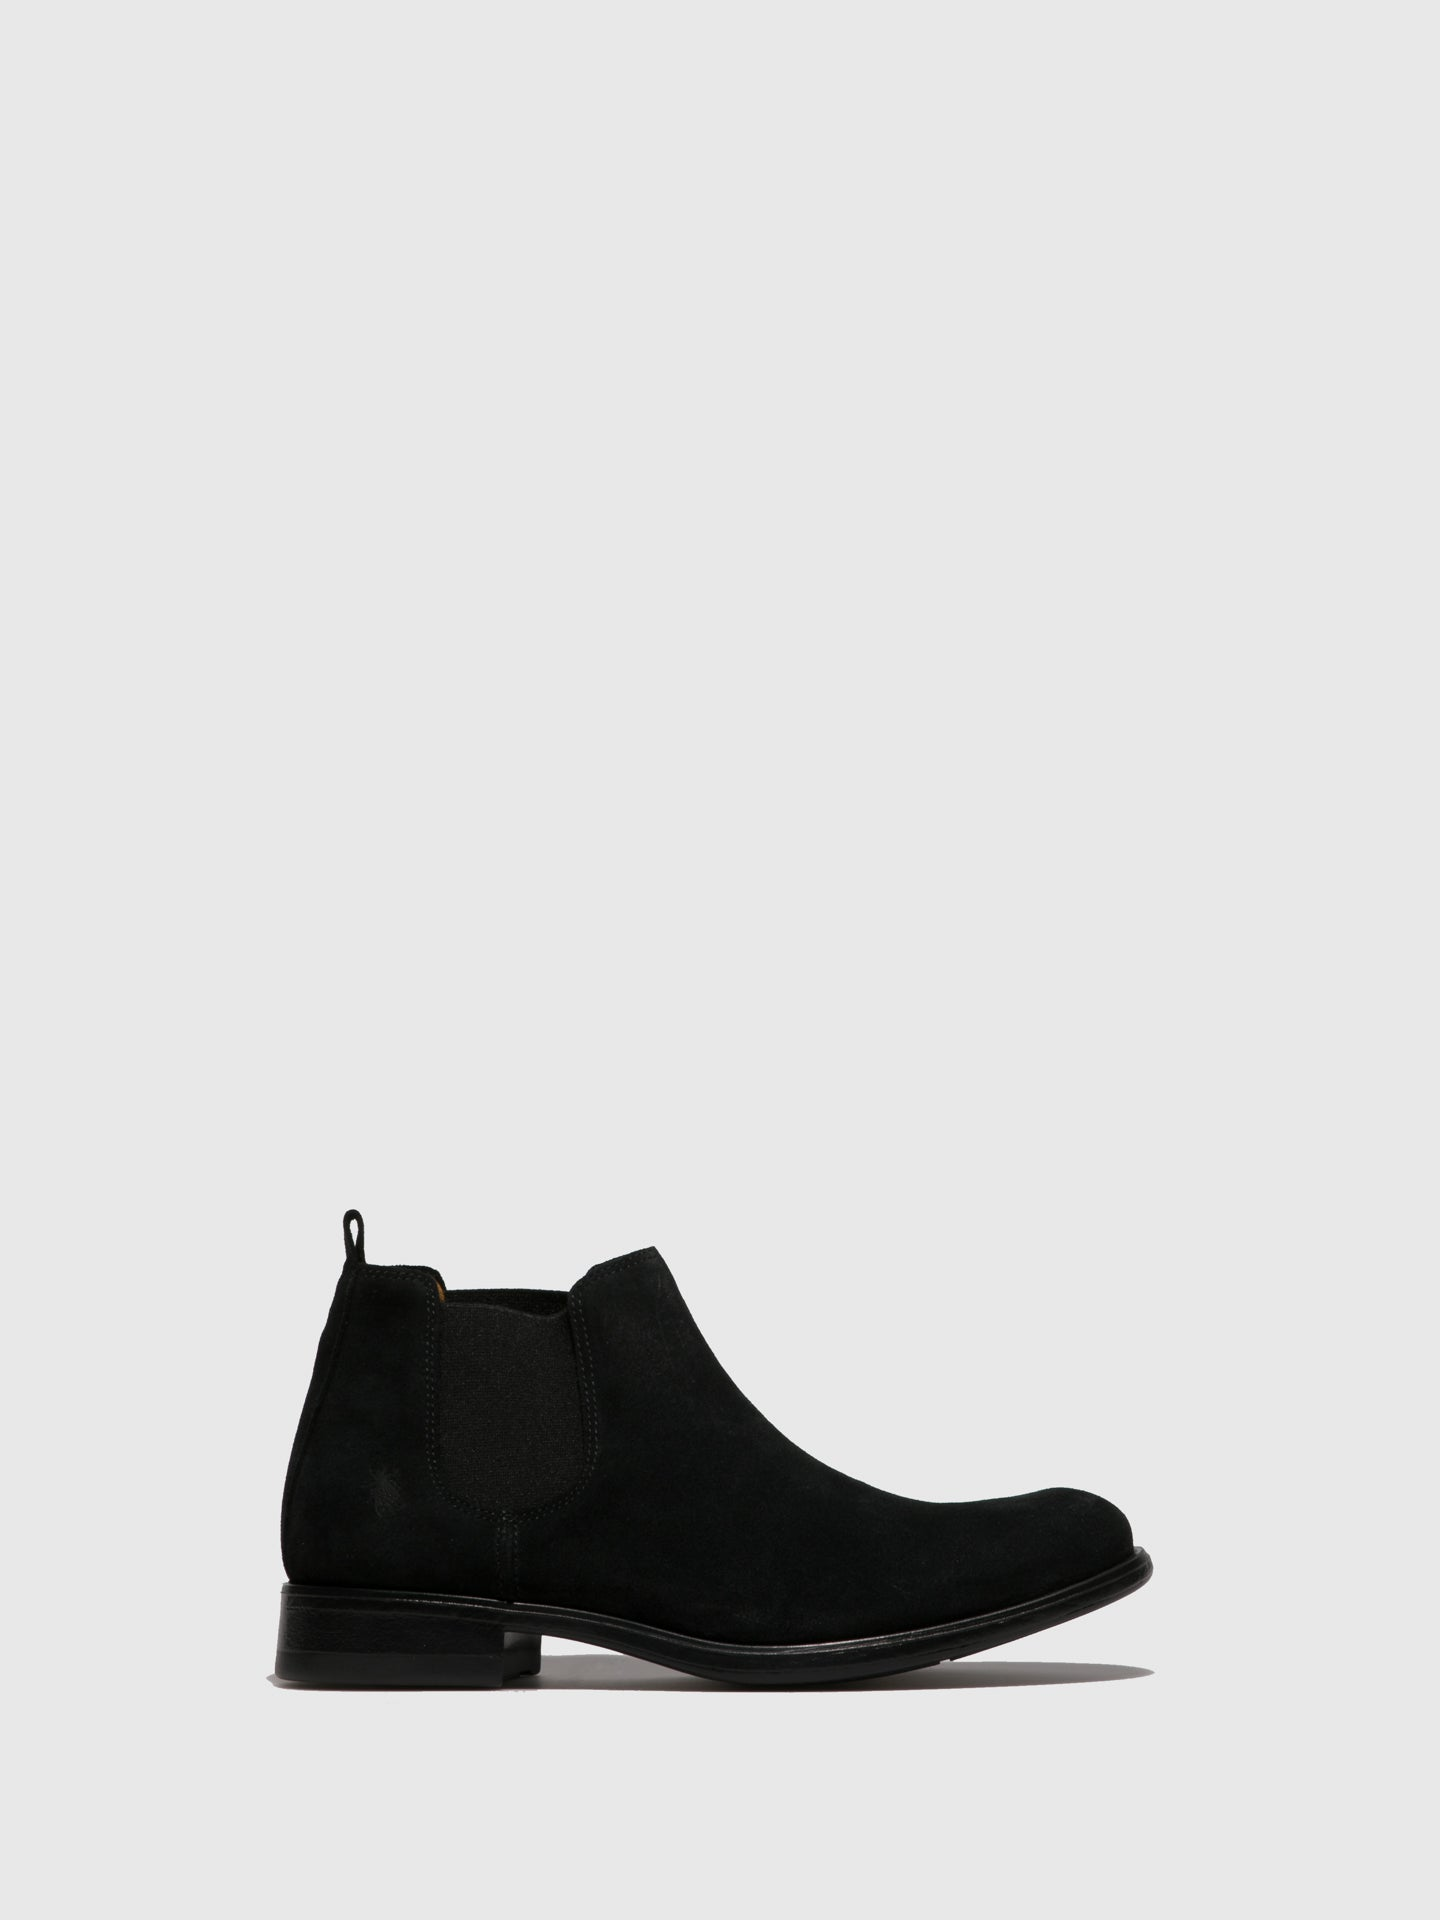 Fly London Black Suede Chelsea Ankle Boots